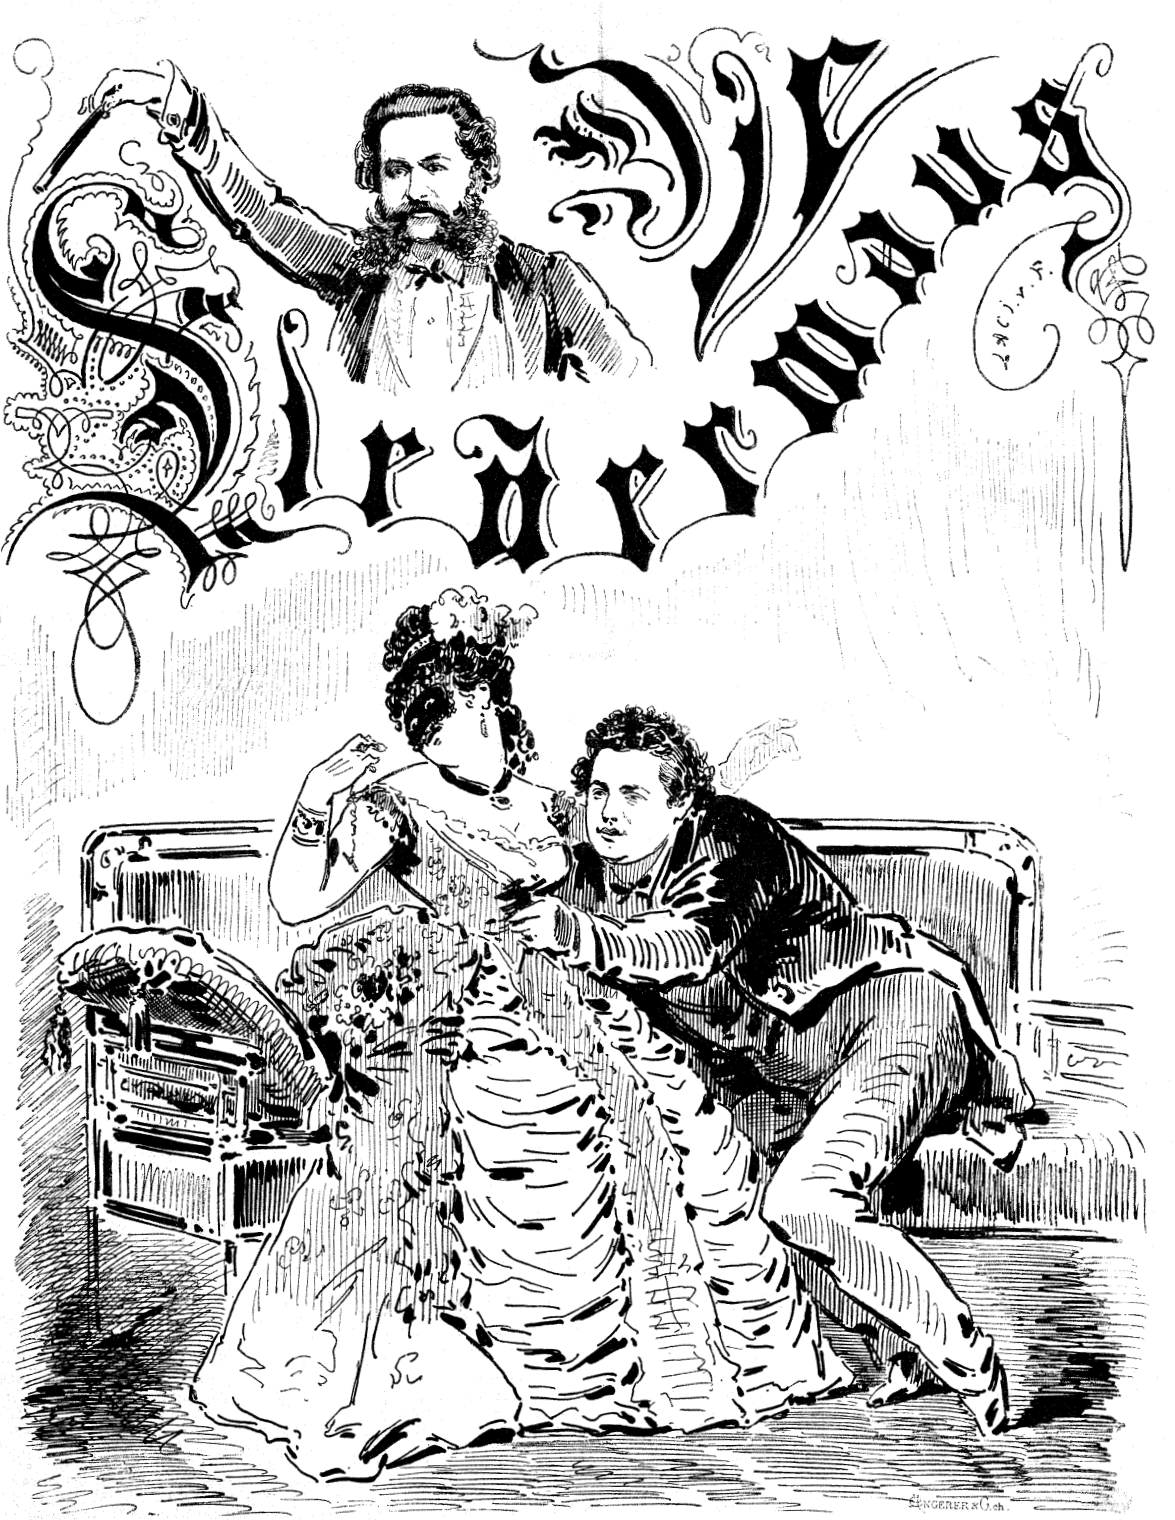 """The cover page of """"Die Bombe"""" showing a scene from the original 1874 production of """"Die Fledermaus."""""""